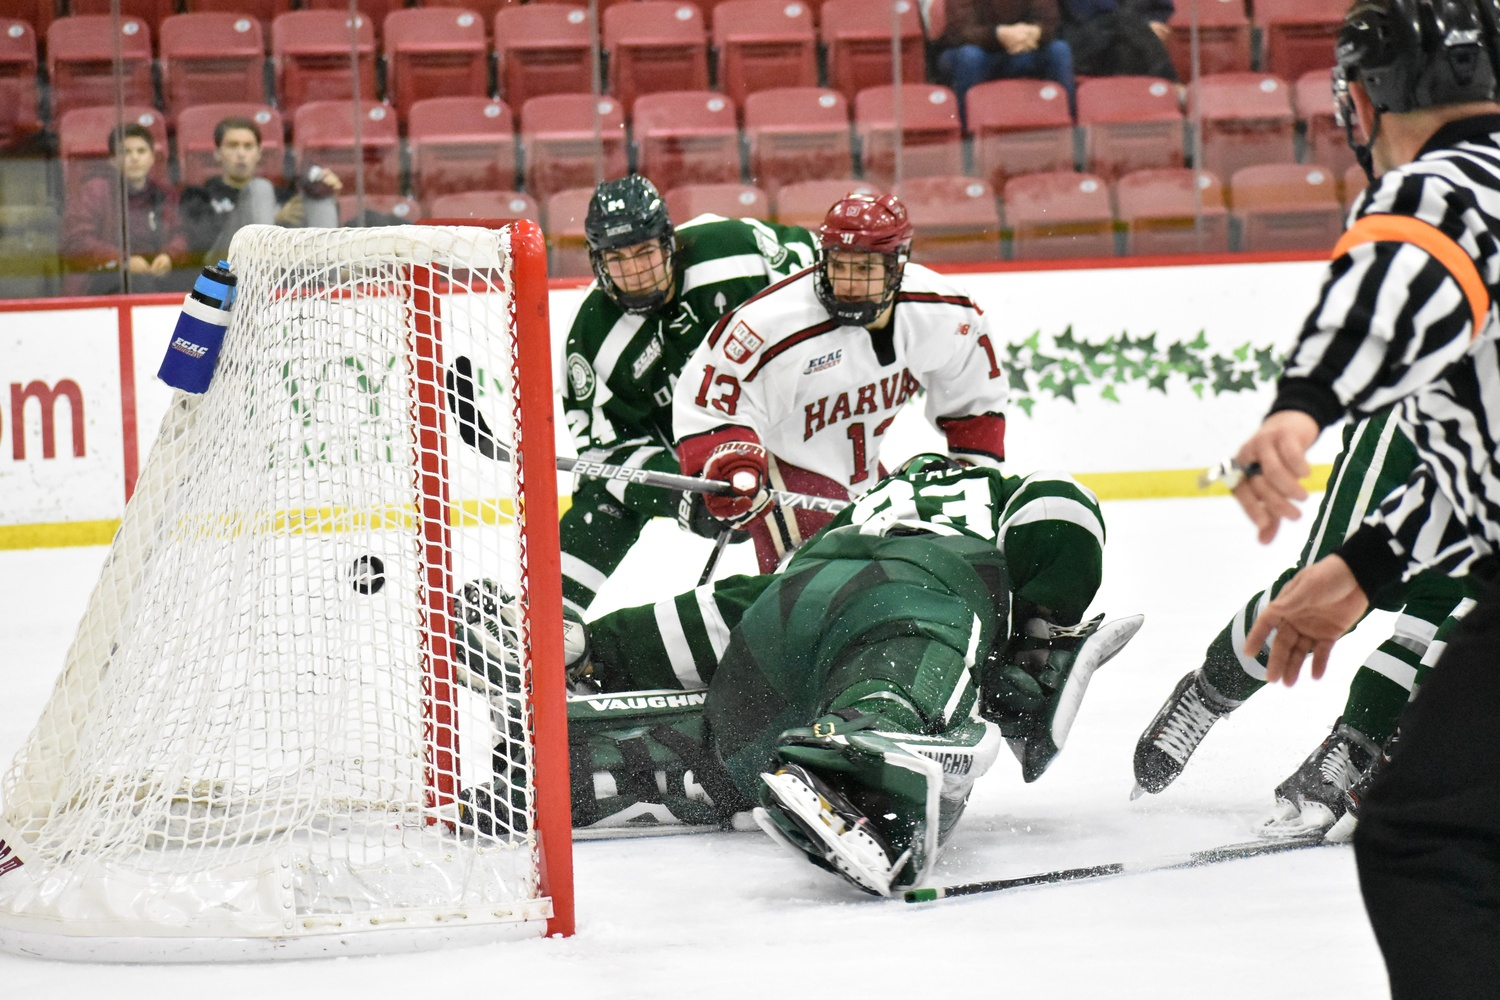 Sophomore Nathan Krusko has notched two goals in the series so far. His tally on Saturday put the Crimson ahead 3-0 near the halfway mark of the second period.